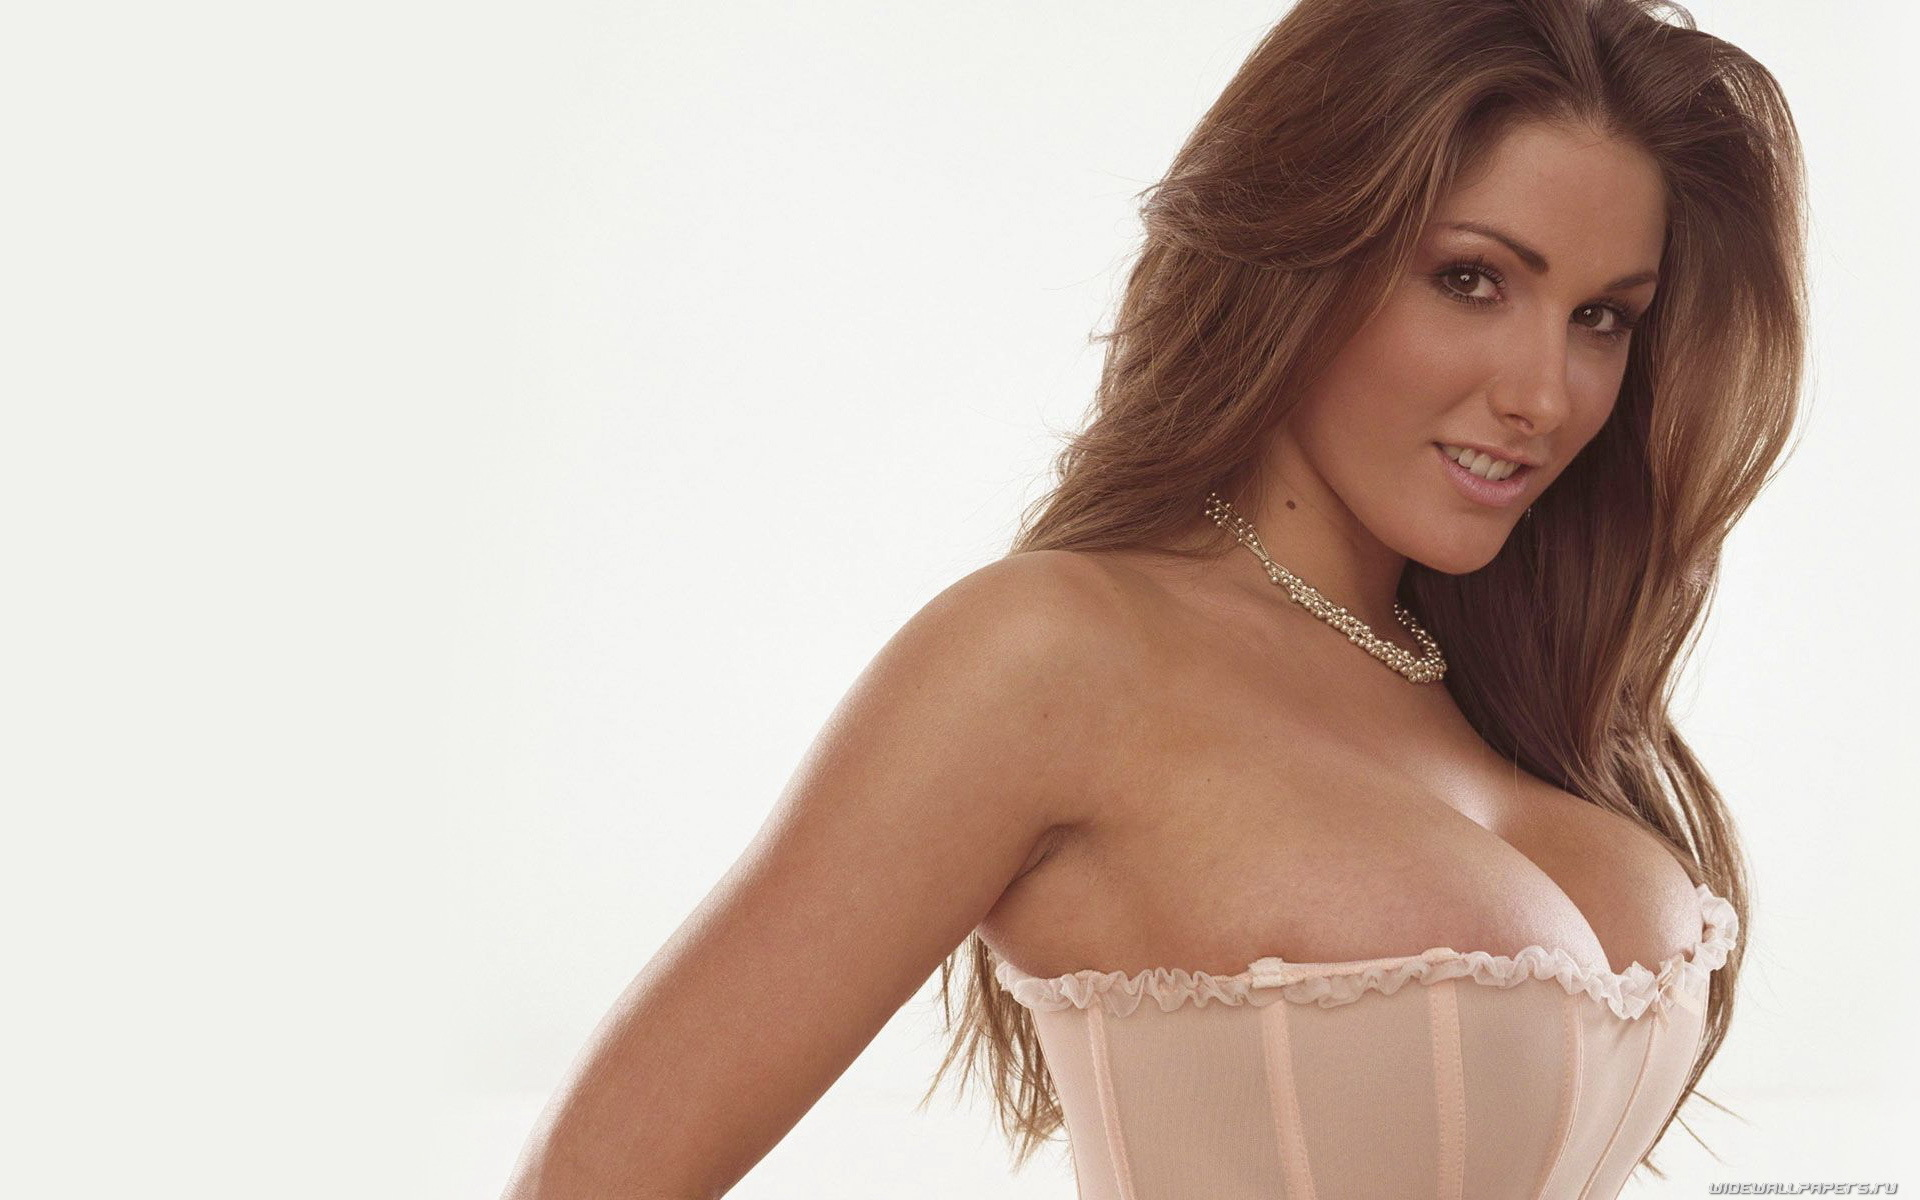 brunette cleavage lucy pinder HD Wallpaper